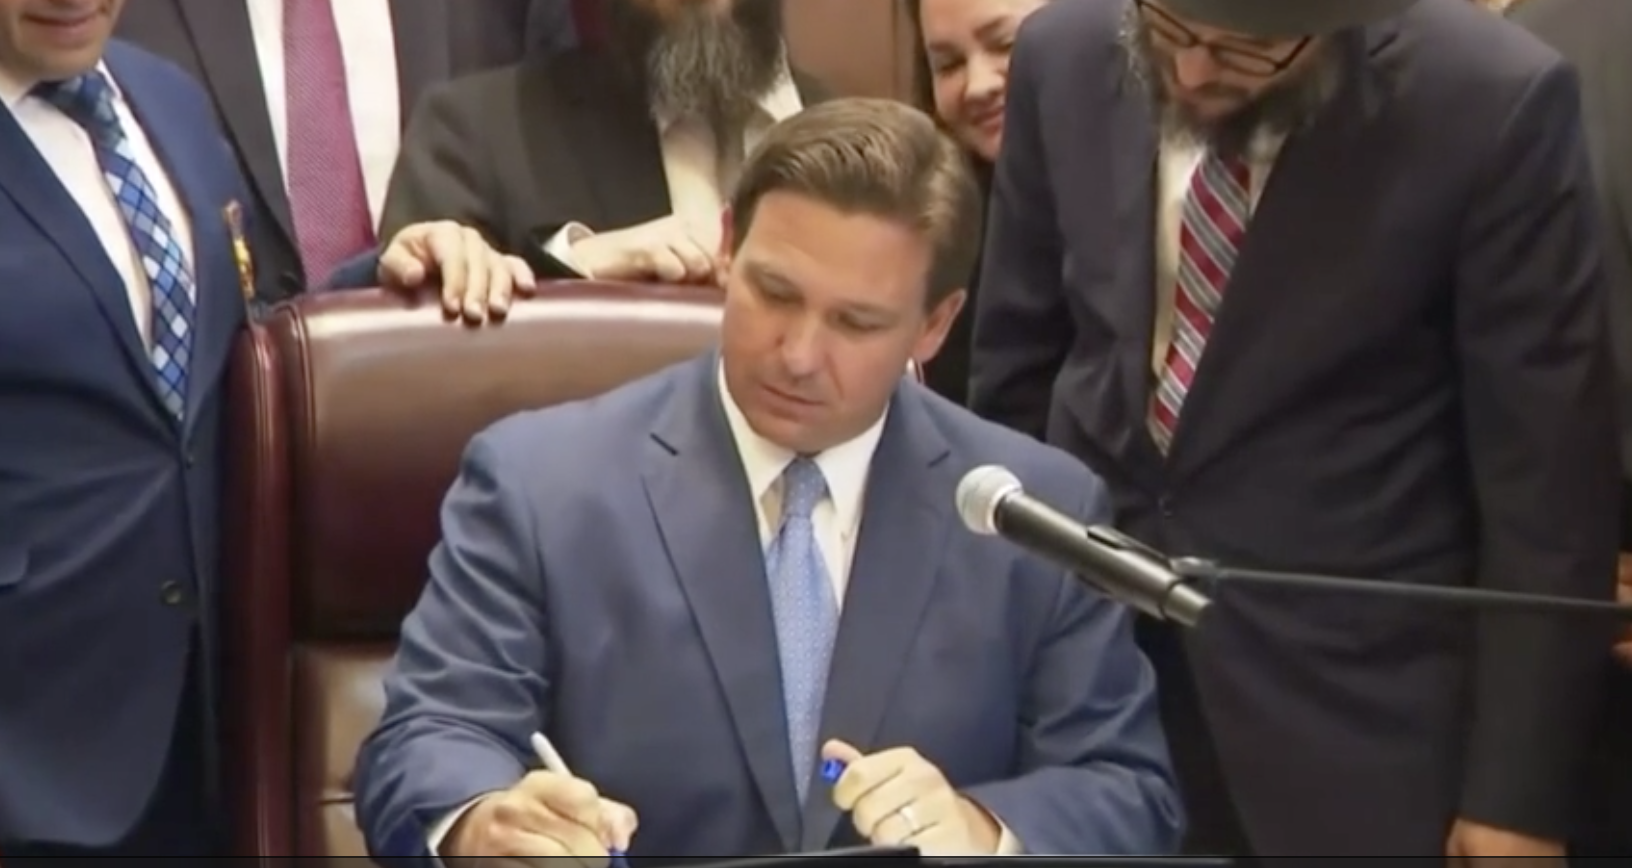 DeSantis Signs New Law Allowing Children to Pray in School